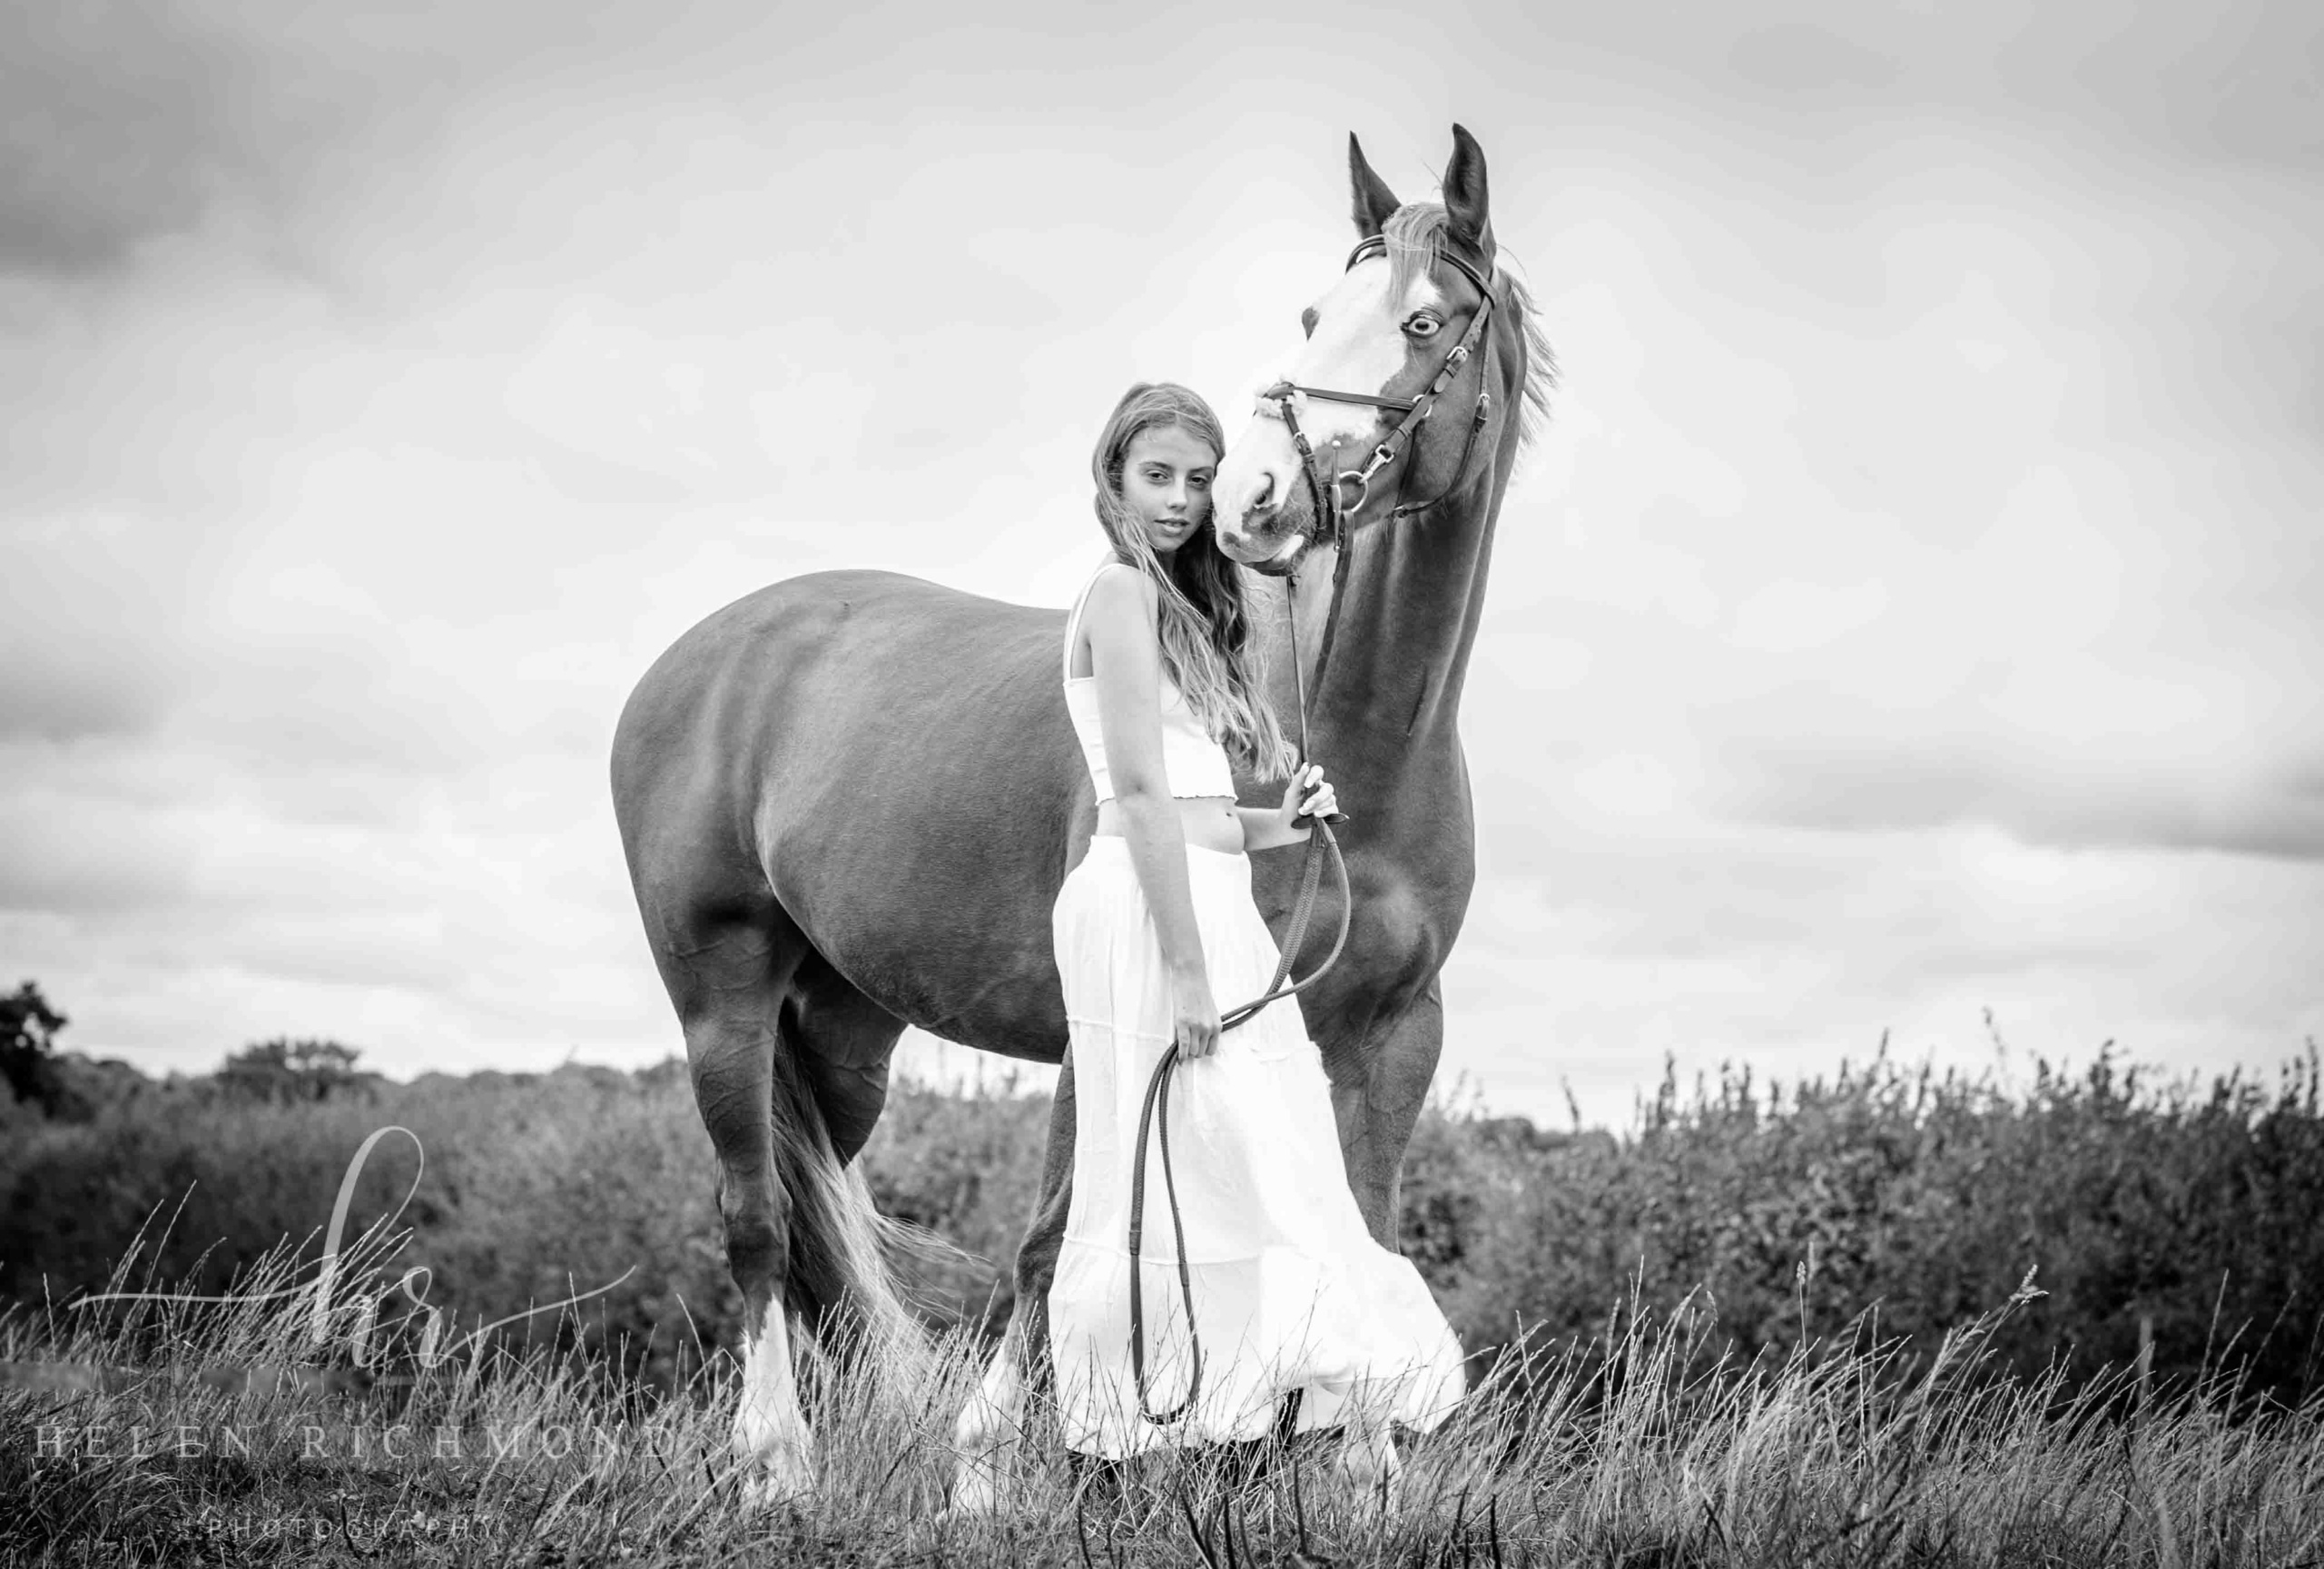 Horse Photography, black and white photograph of young women in white dress stood alongside horse set in landscape setting